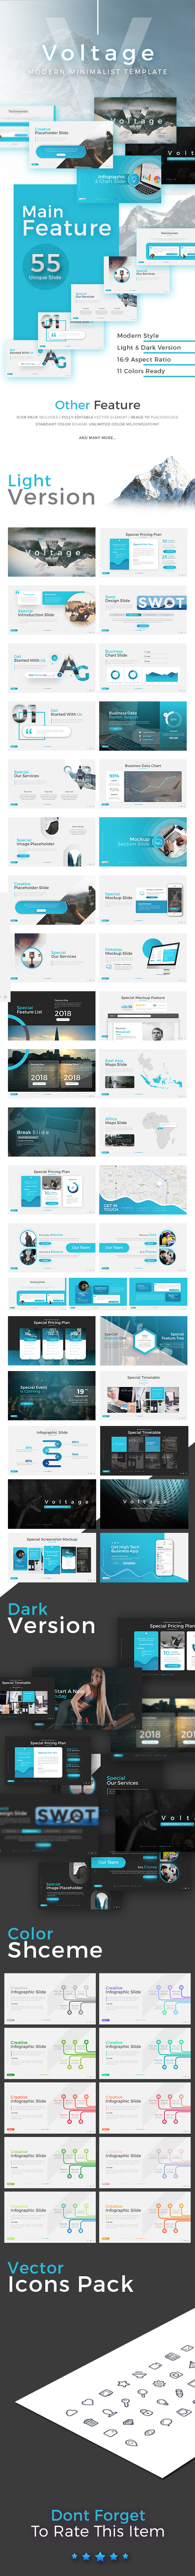 Voltage - Business Presentation - Business PowerPoint Templates